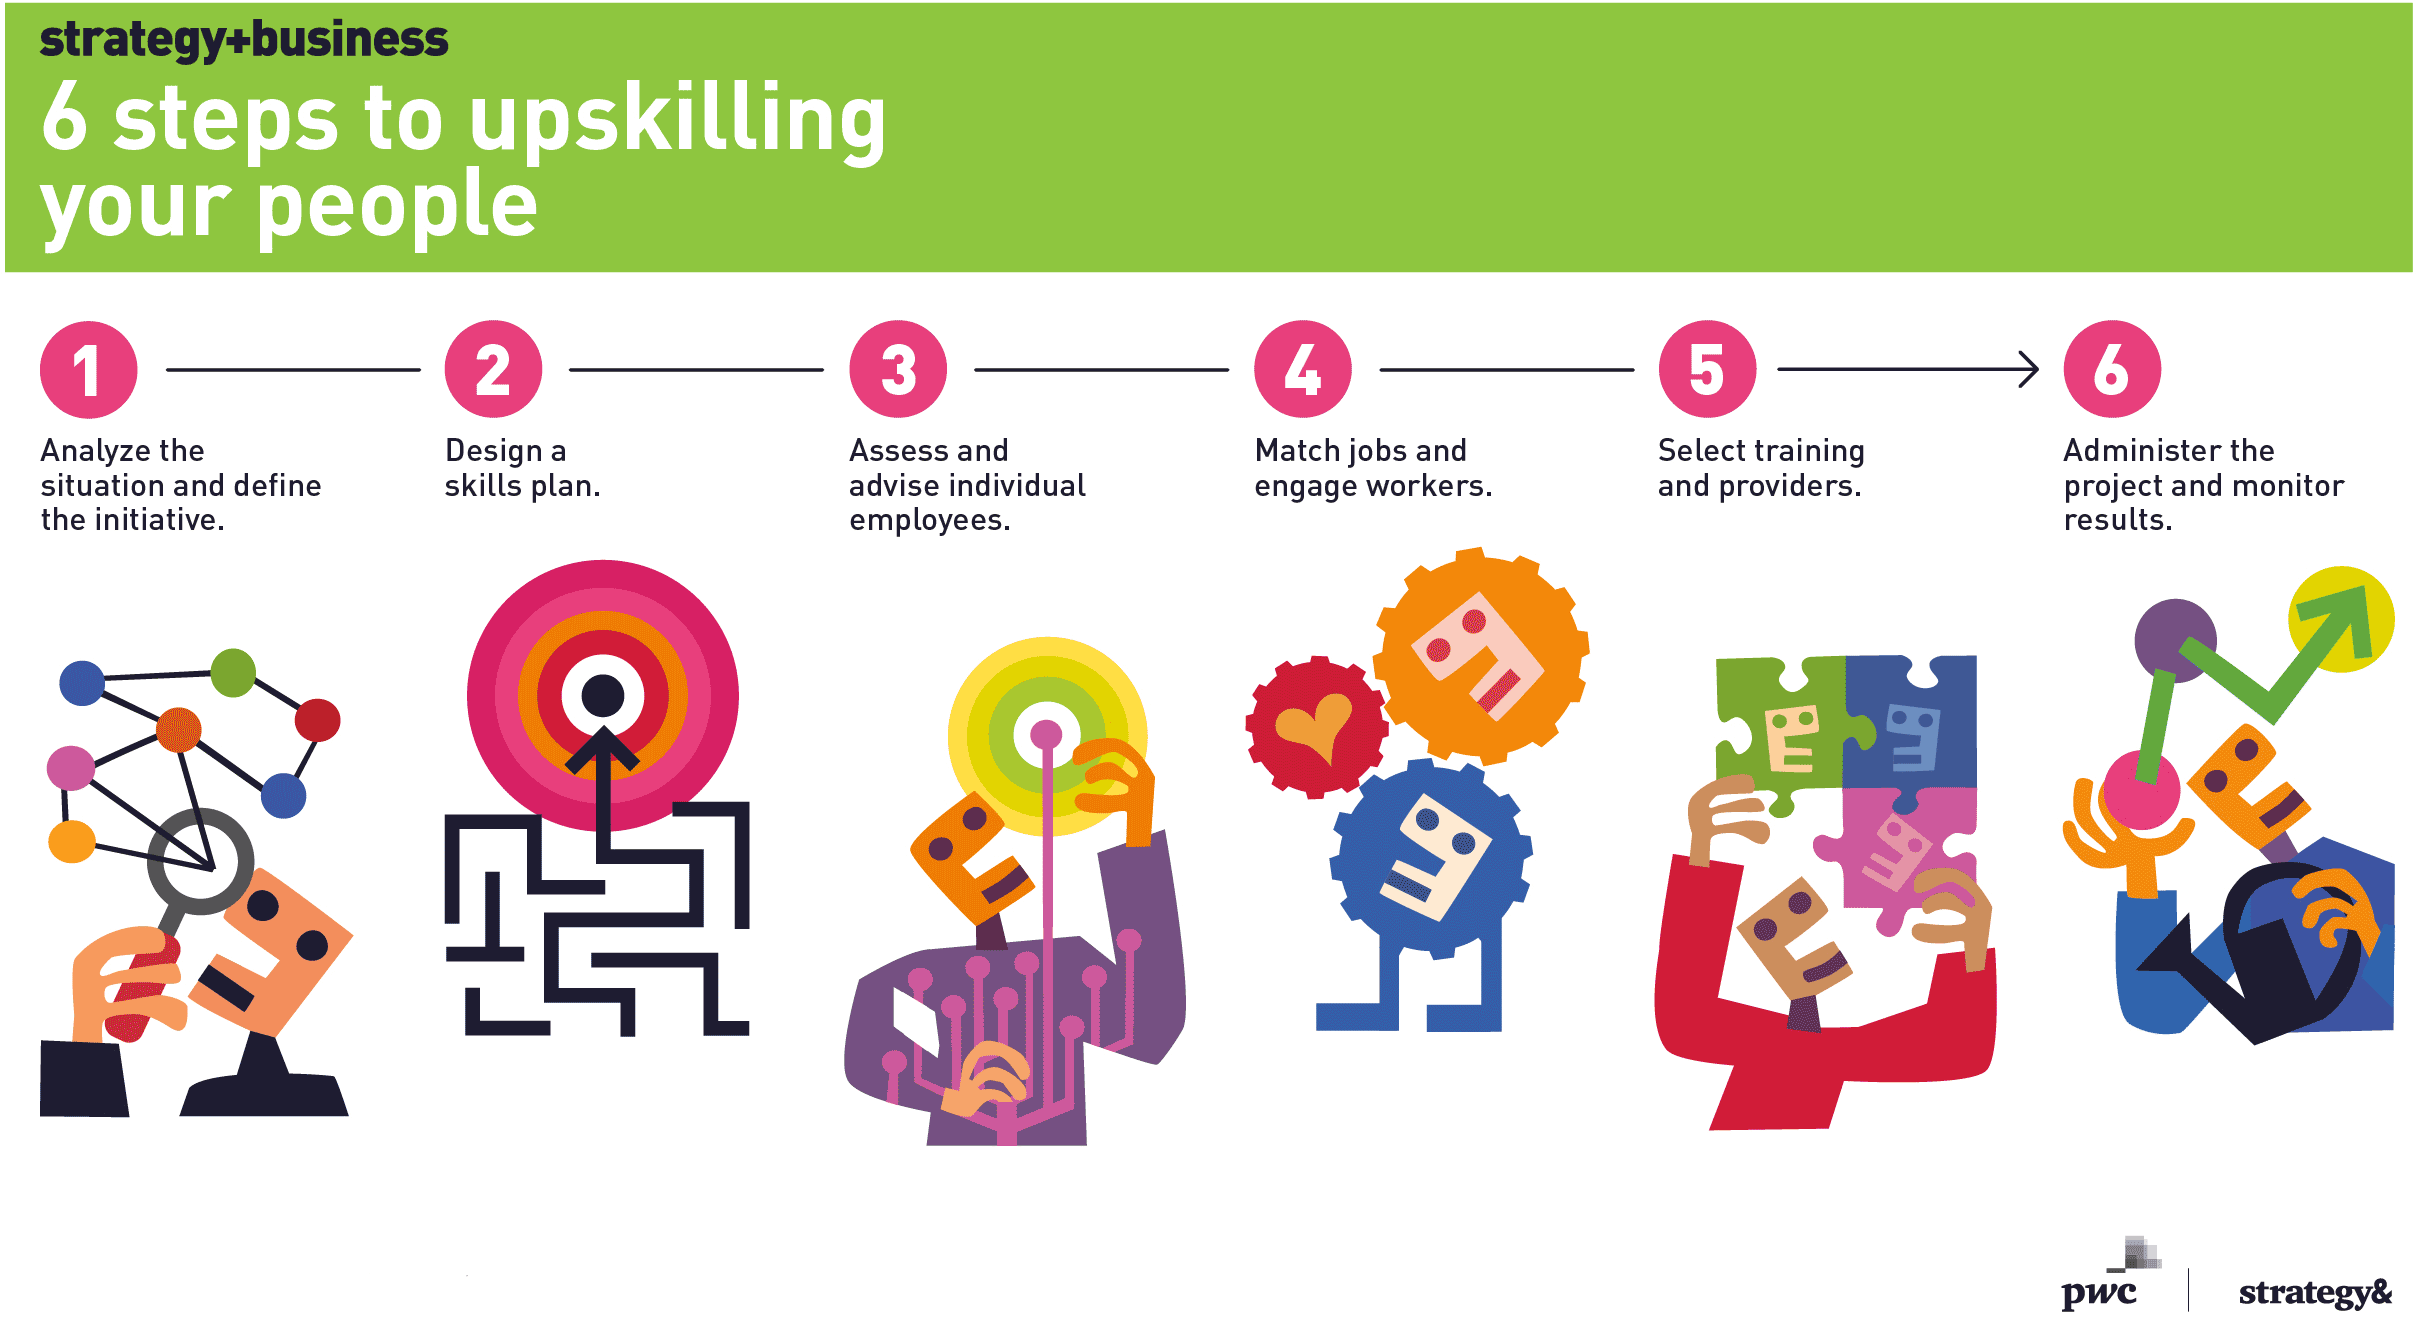 6 steps to upskilling your people